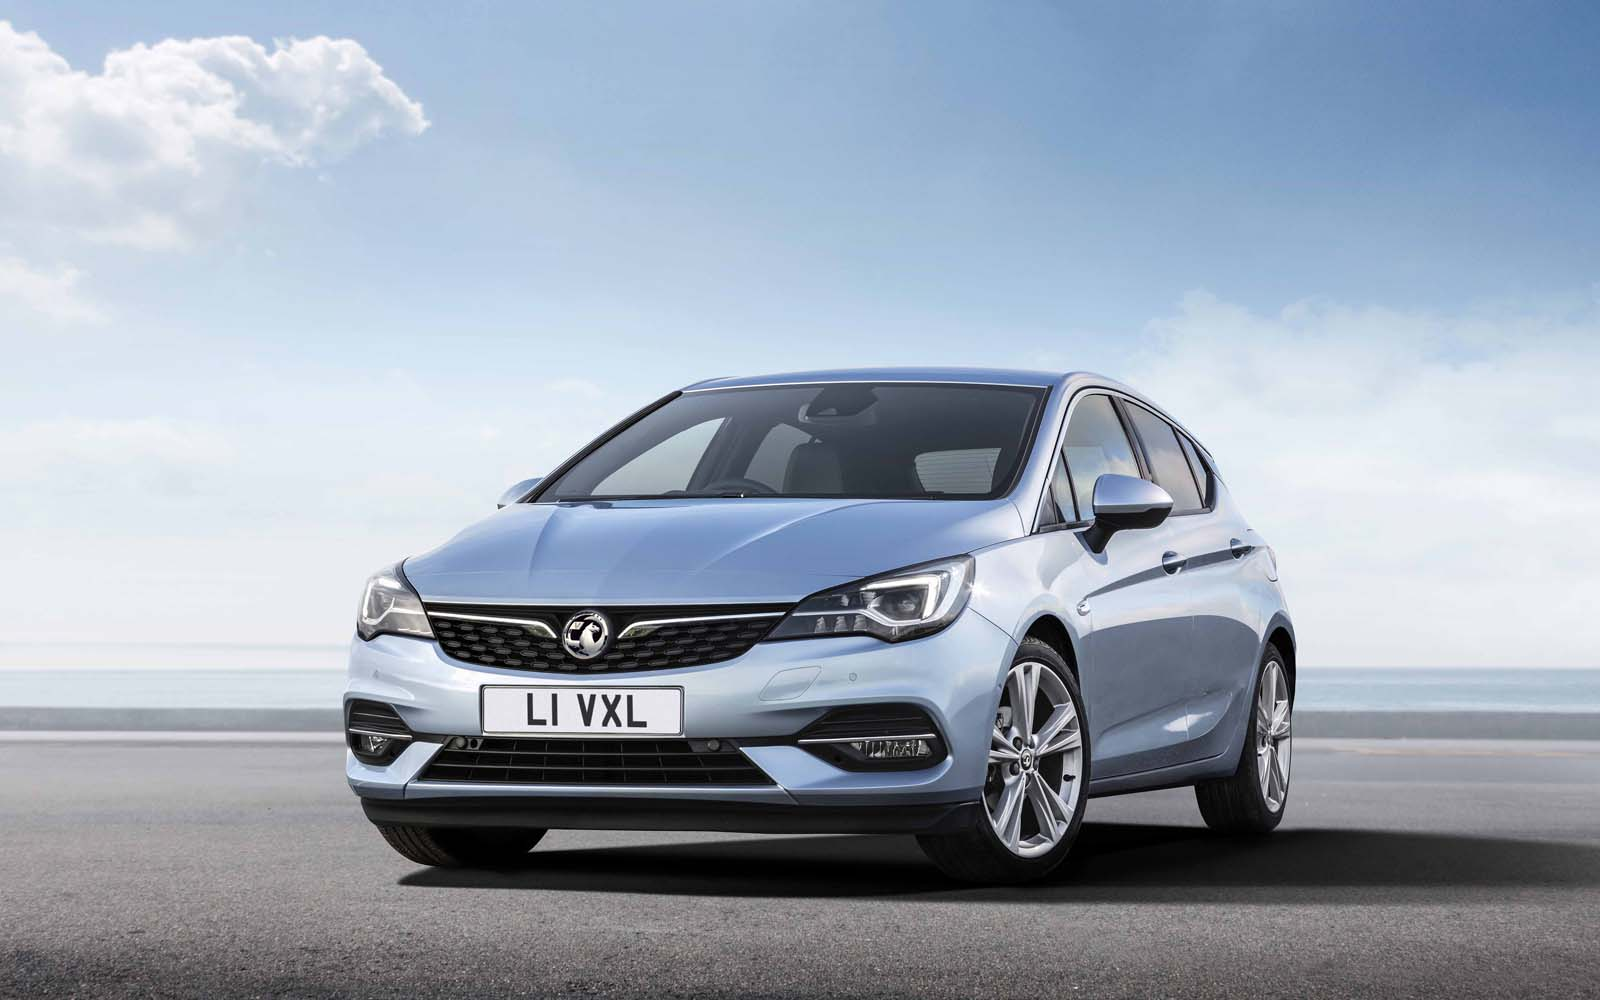 New Vauxhall Astra Uk Prices And Specifications Revealed Autocar